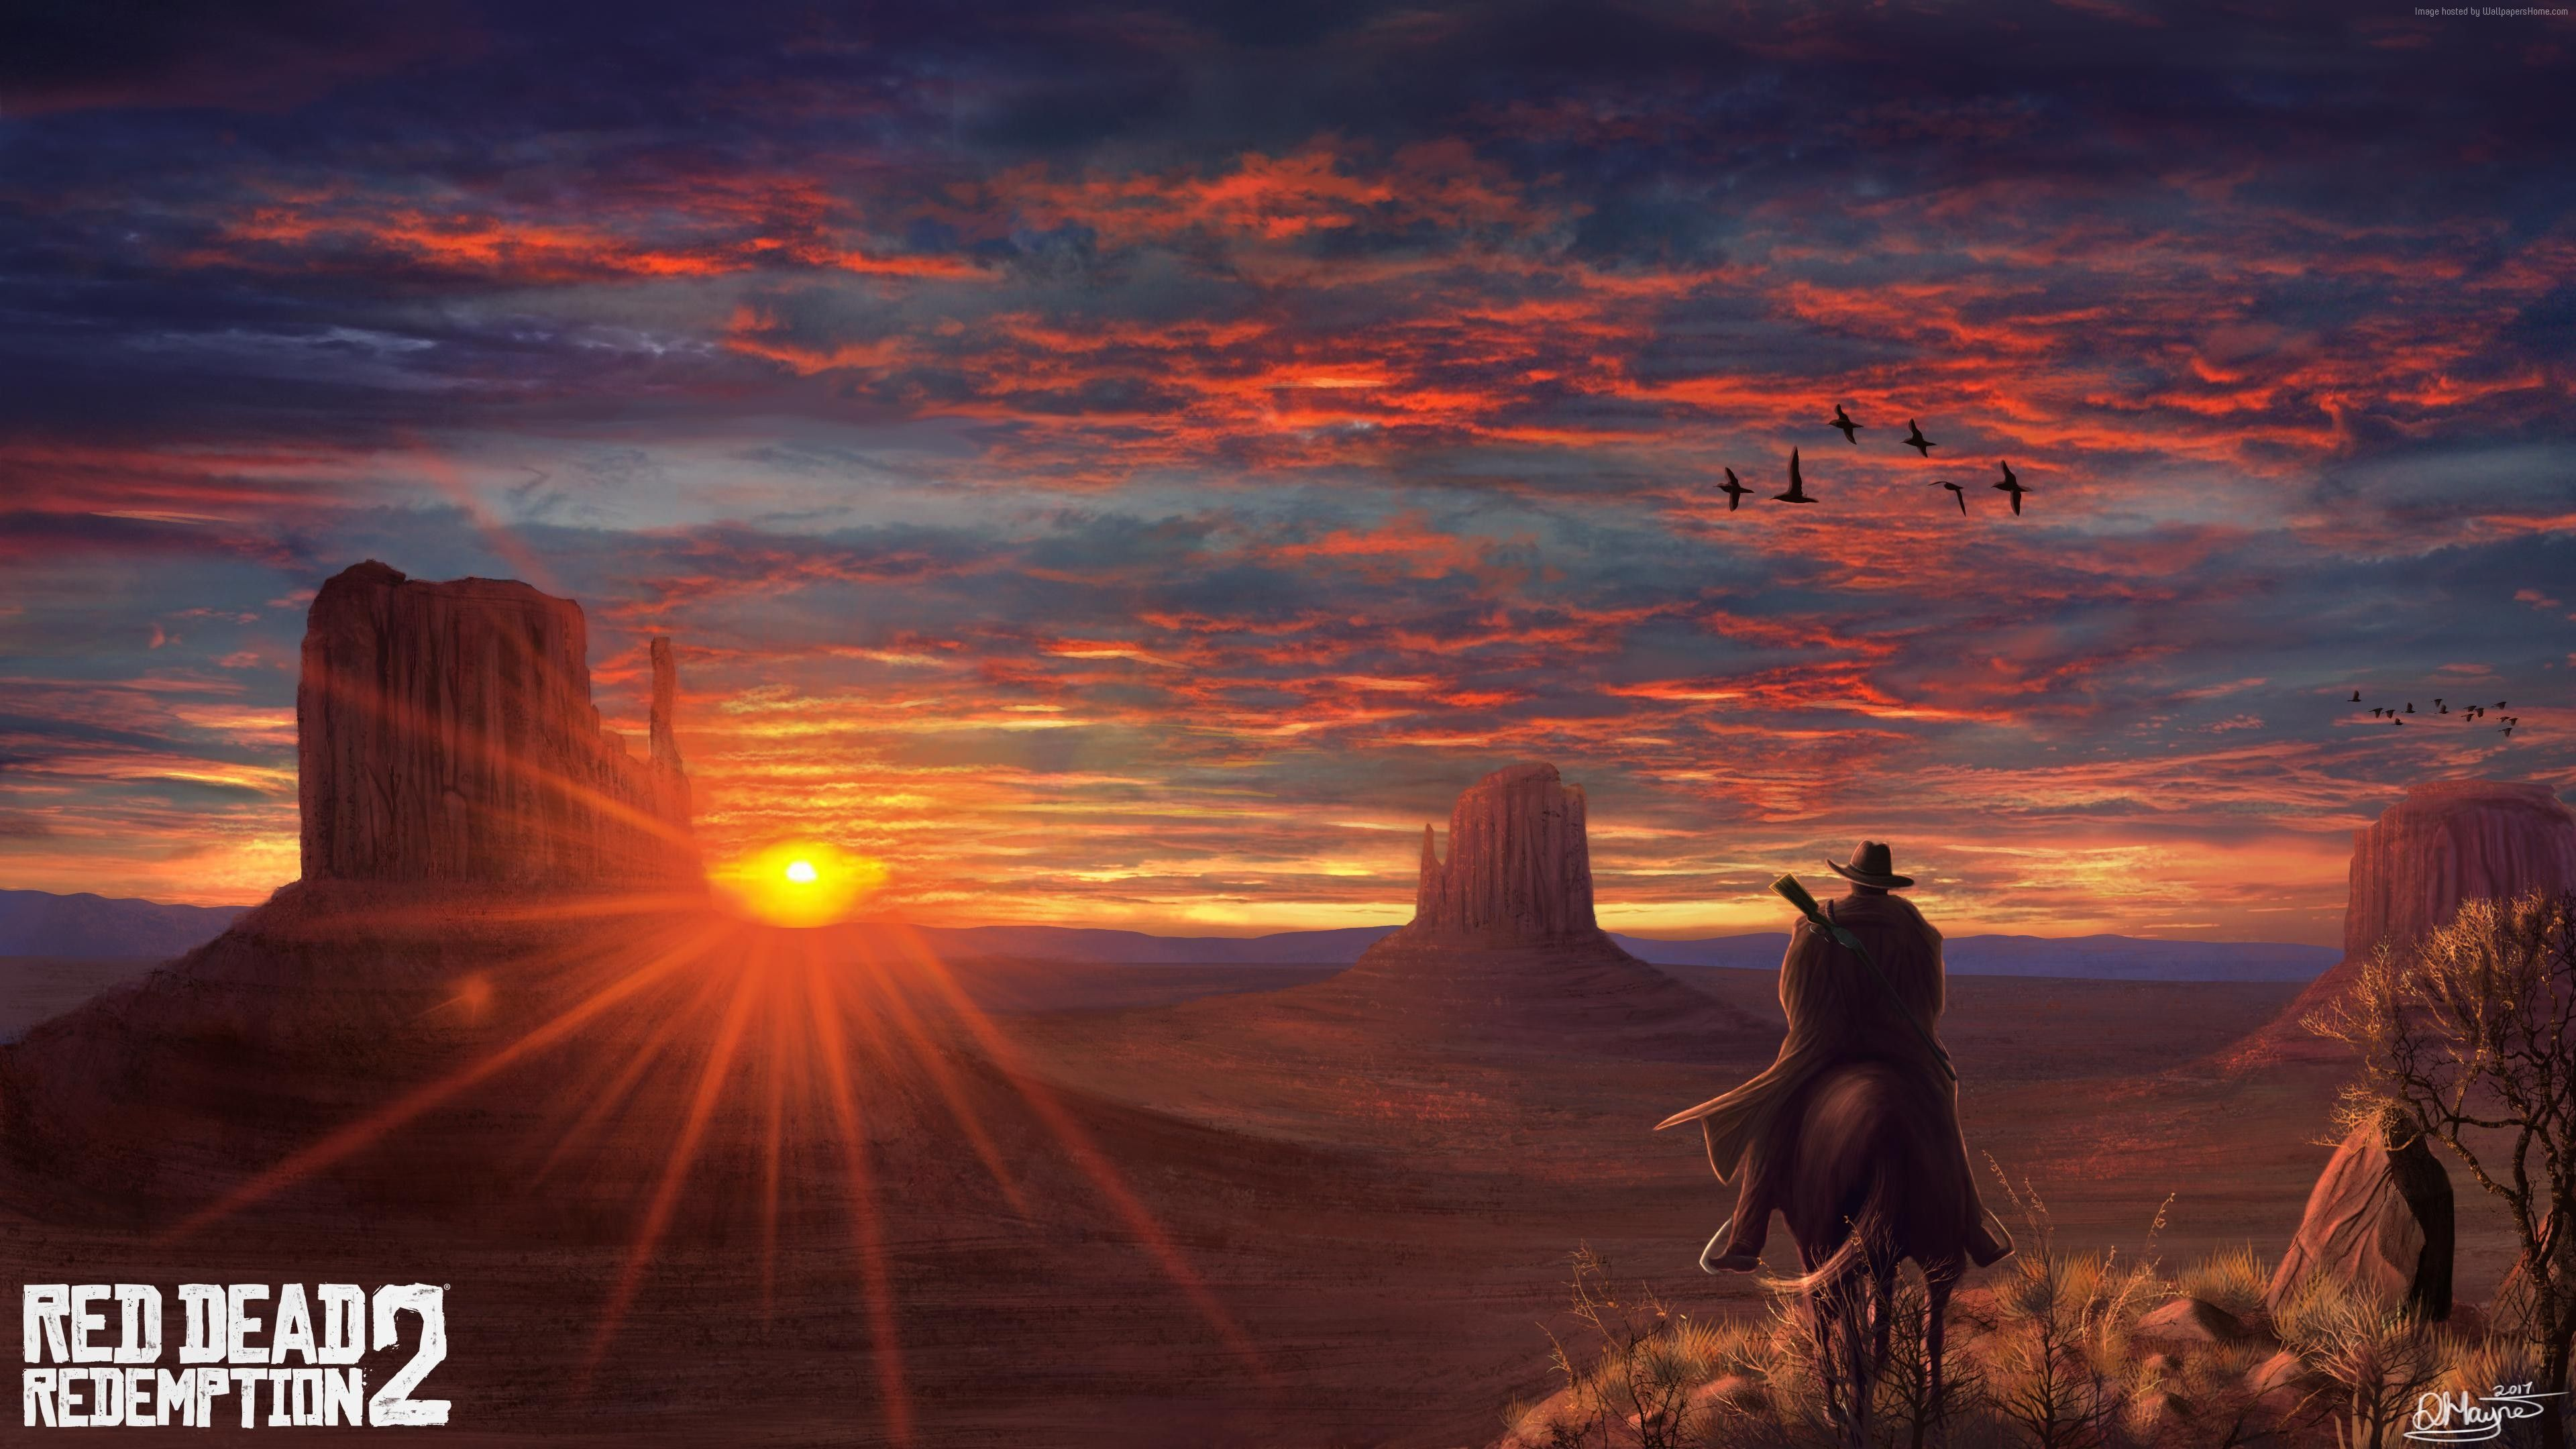 Free Download Pin By Wallpaperlive On Hd Wallpaper Red Dead